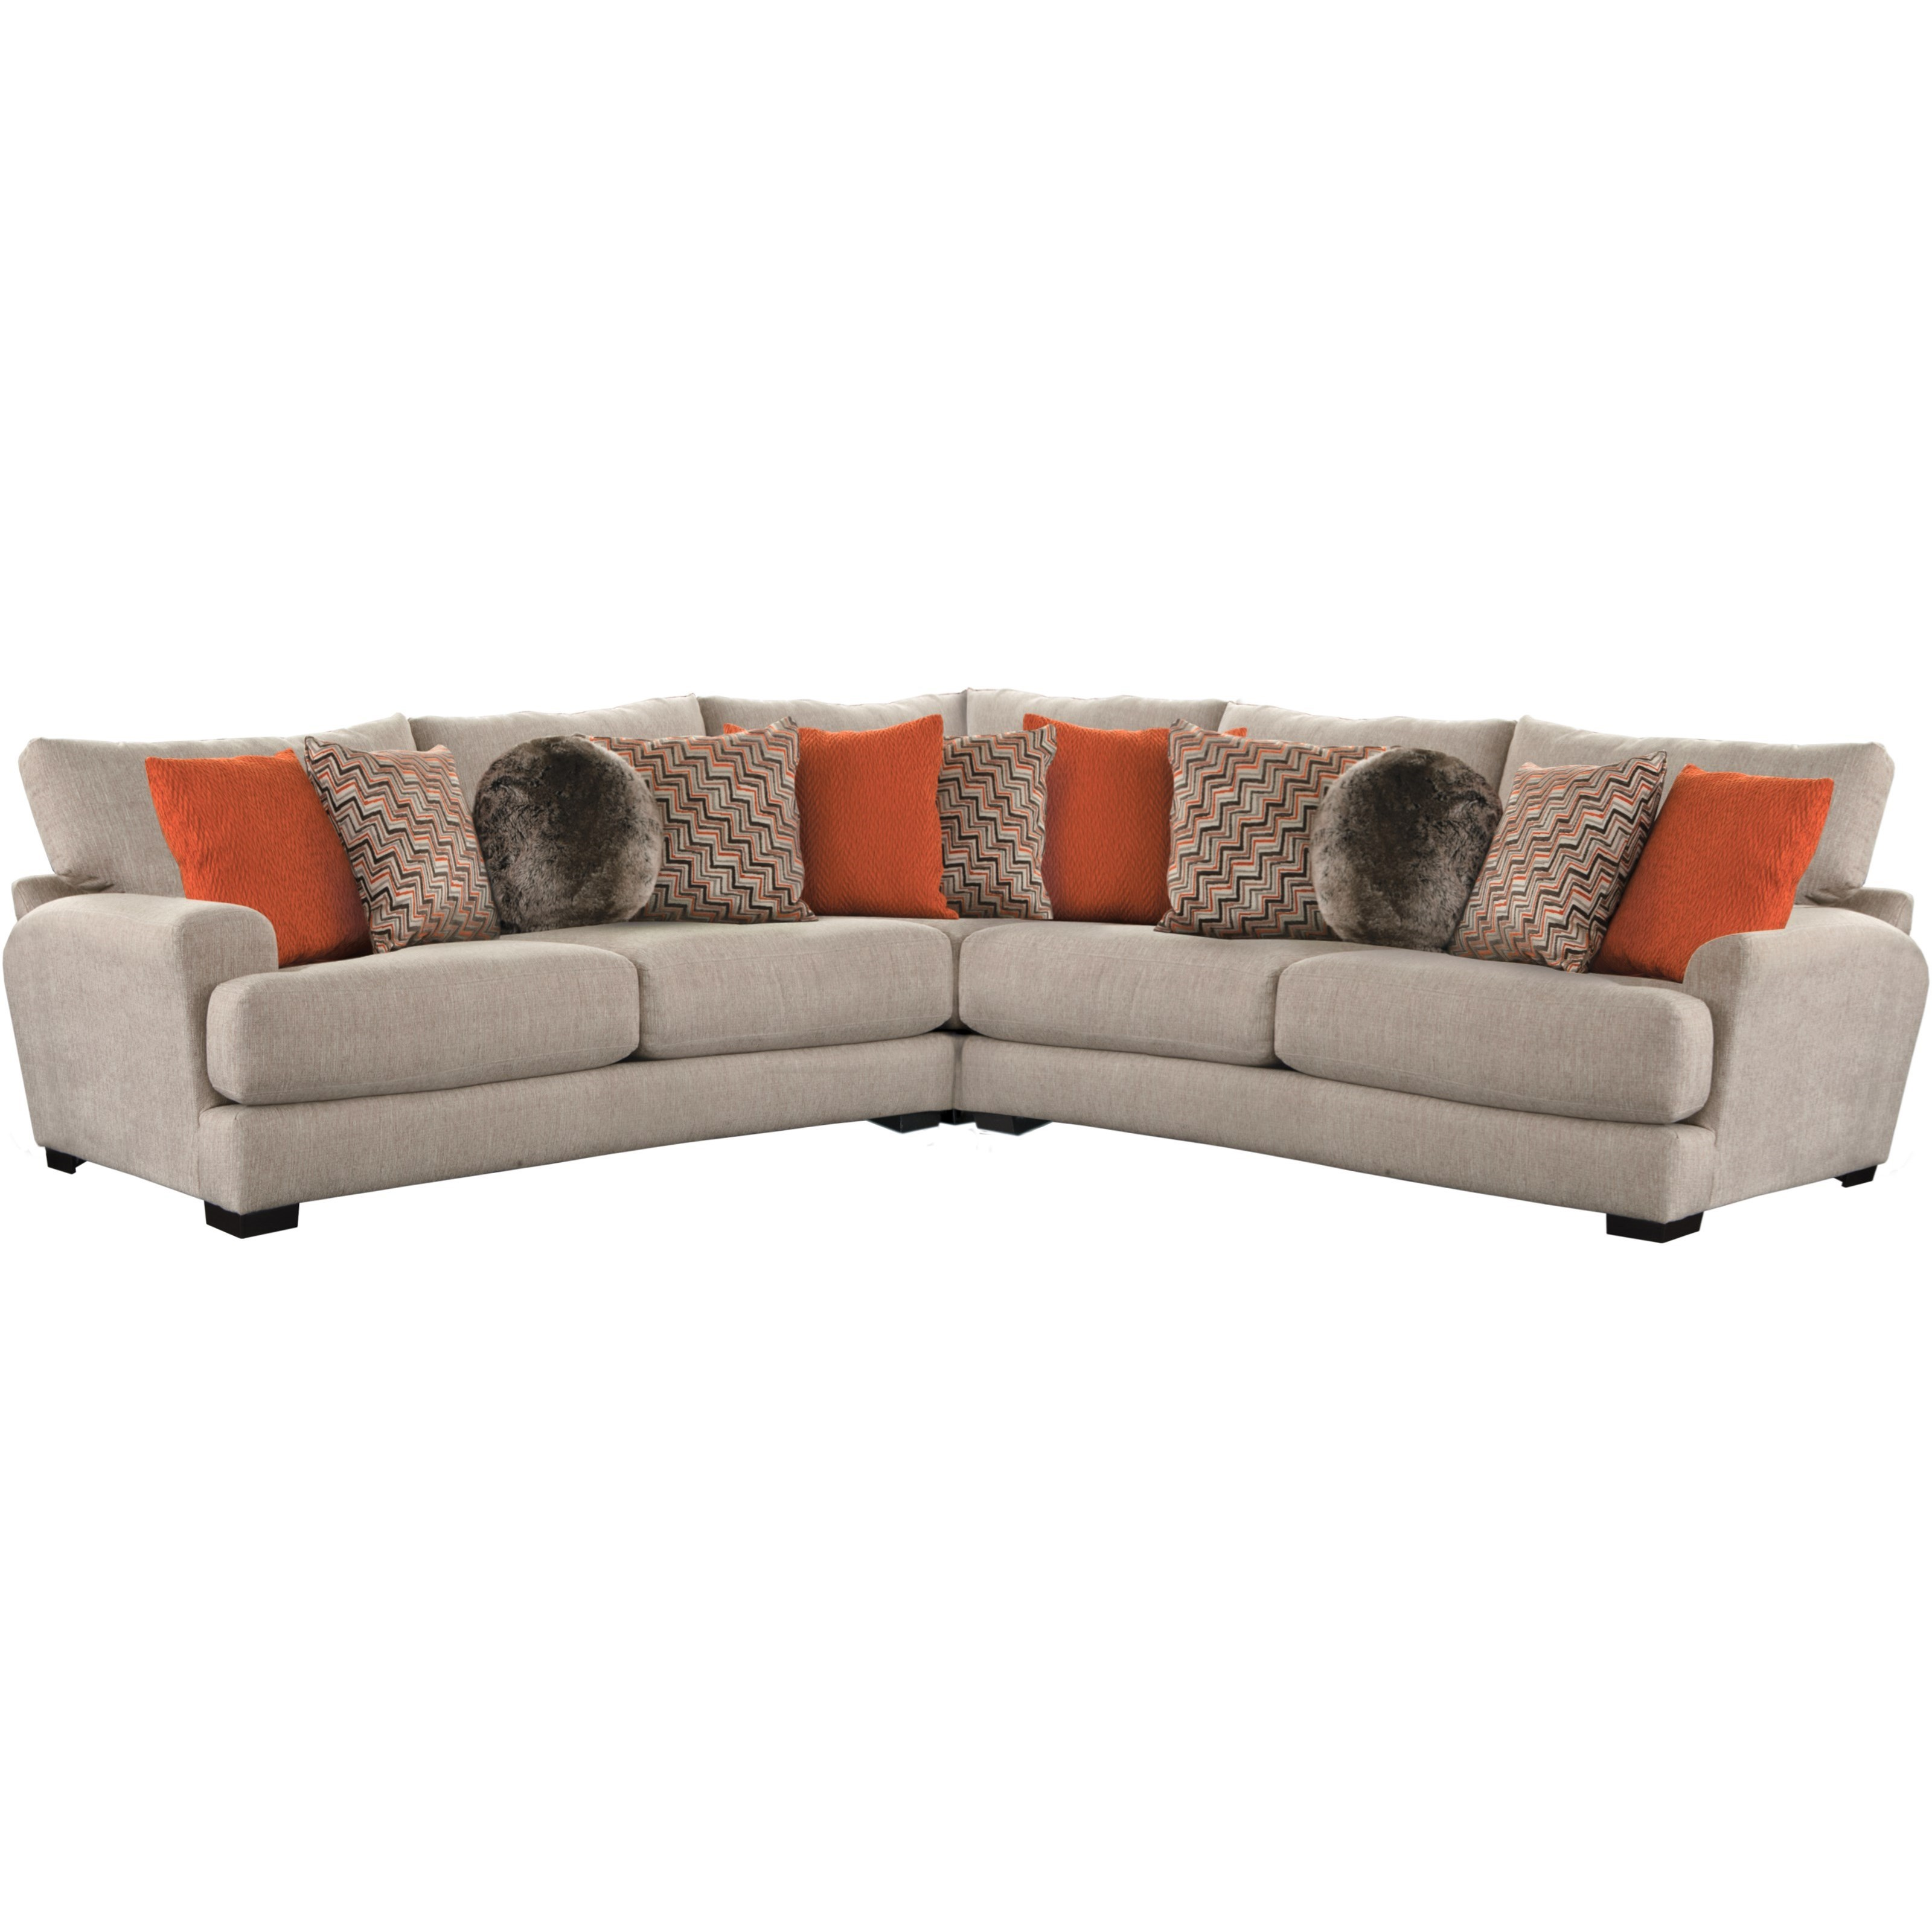 jackson furniture sectional sofas bi fold futon sofa bed frame only ava with 4 seats and 2 usb